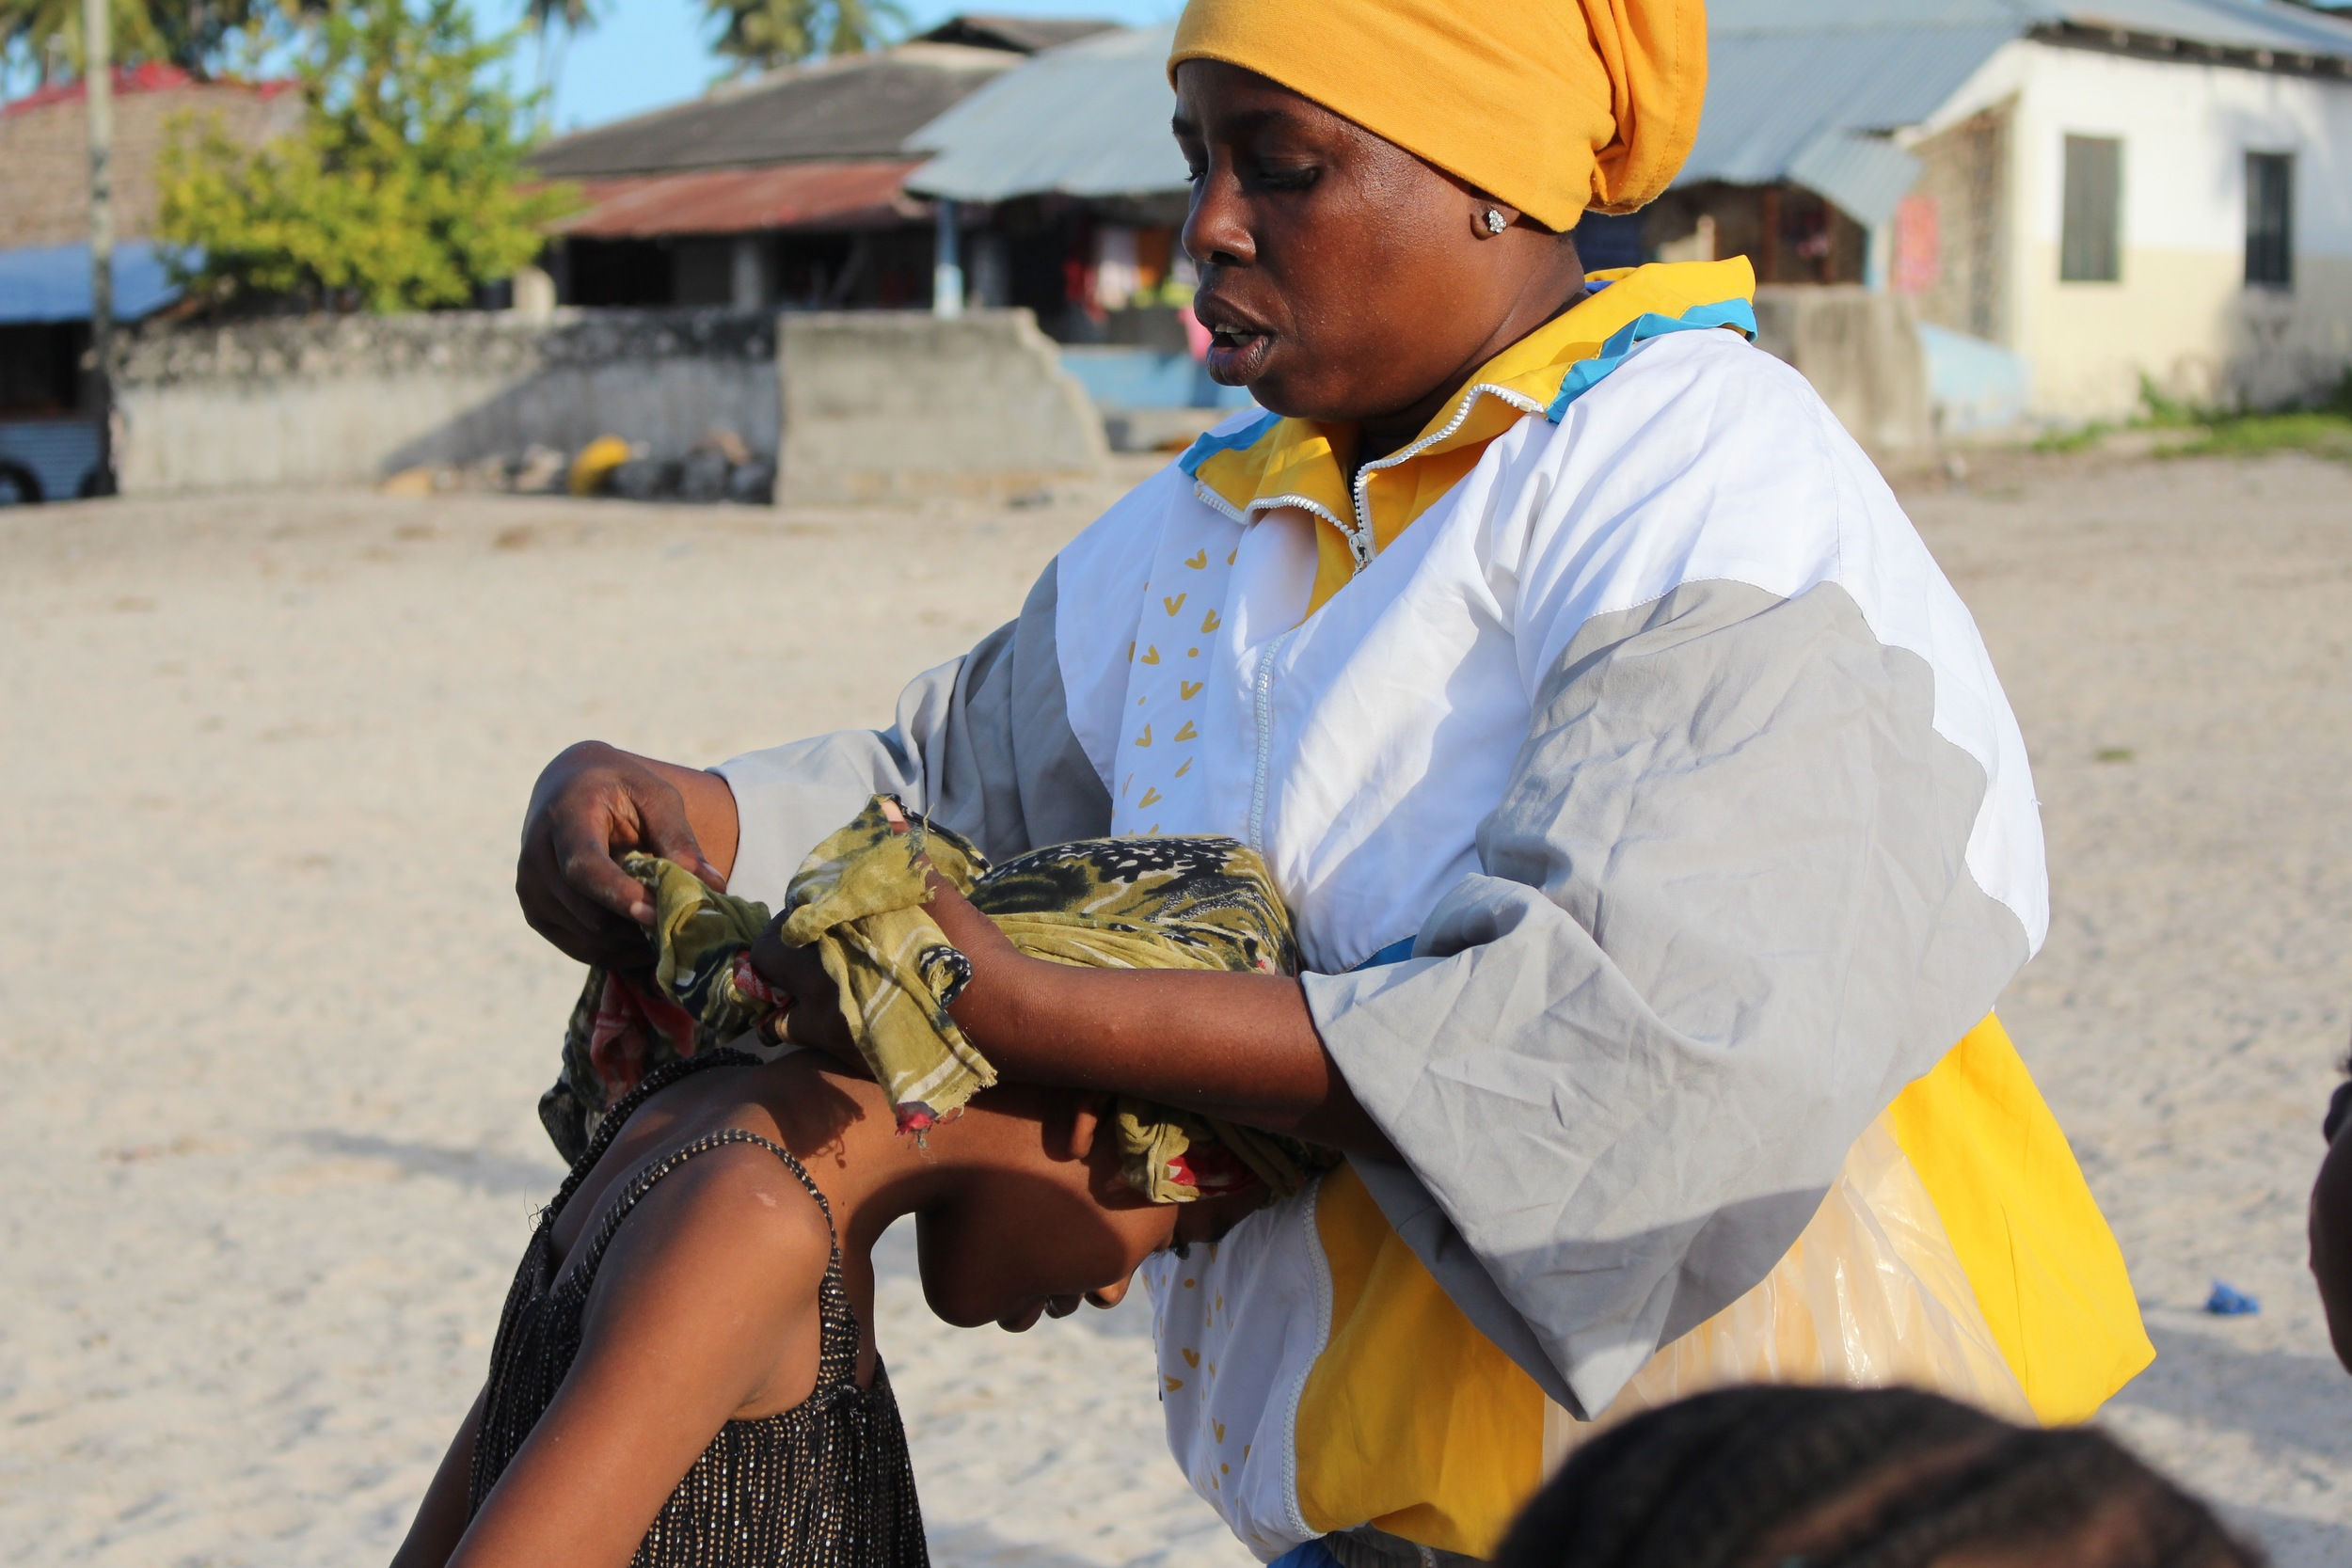 Bettina tying up a headscarf in Paje, July 2015